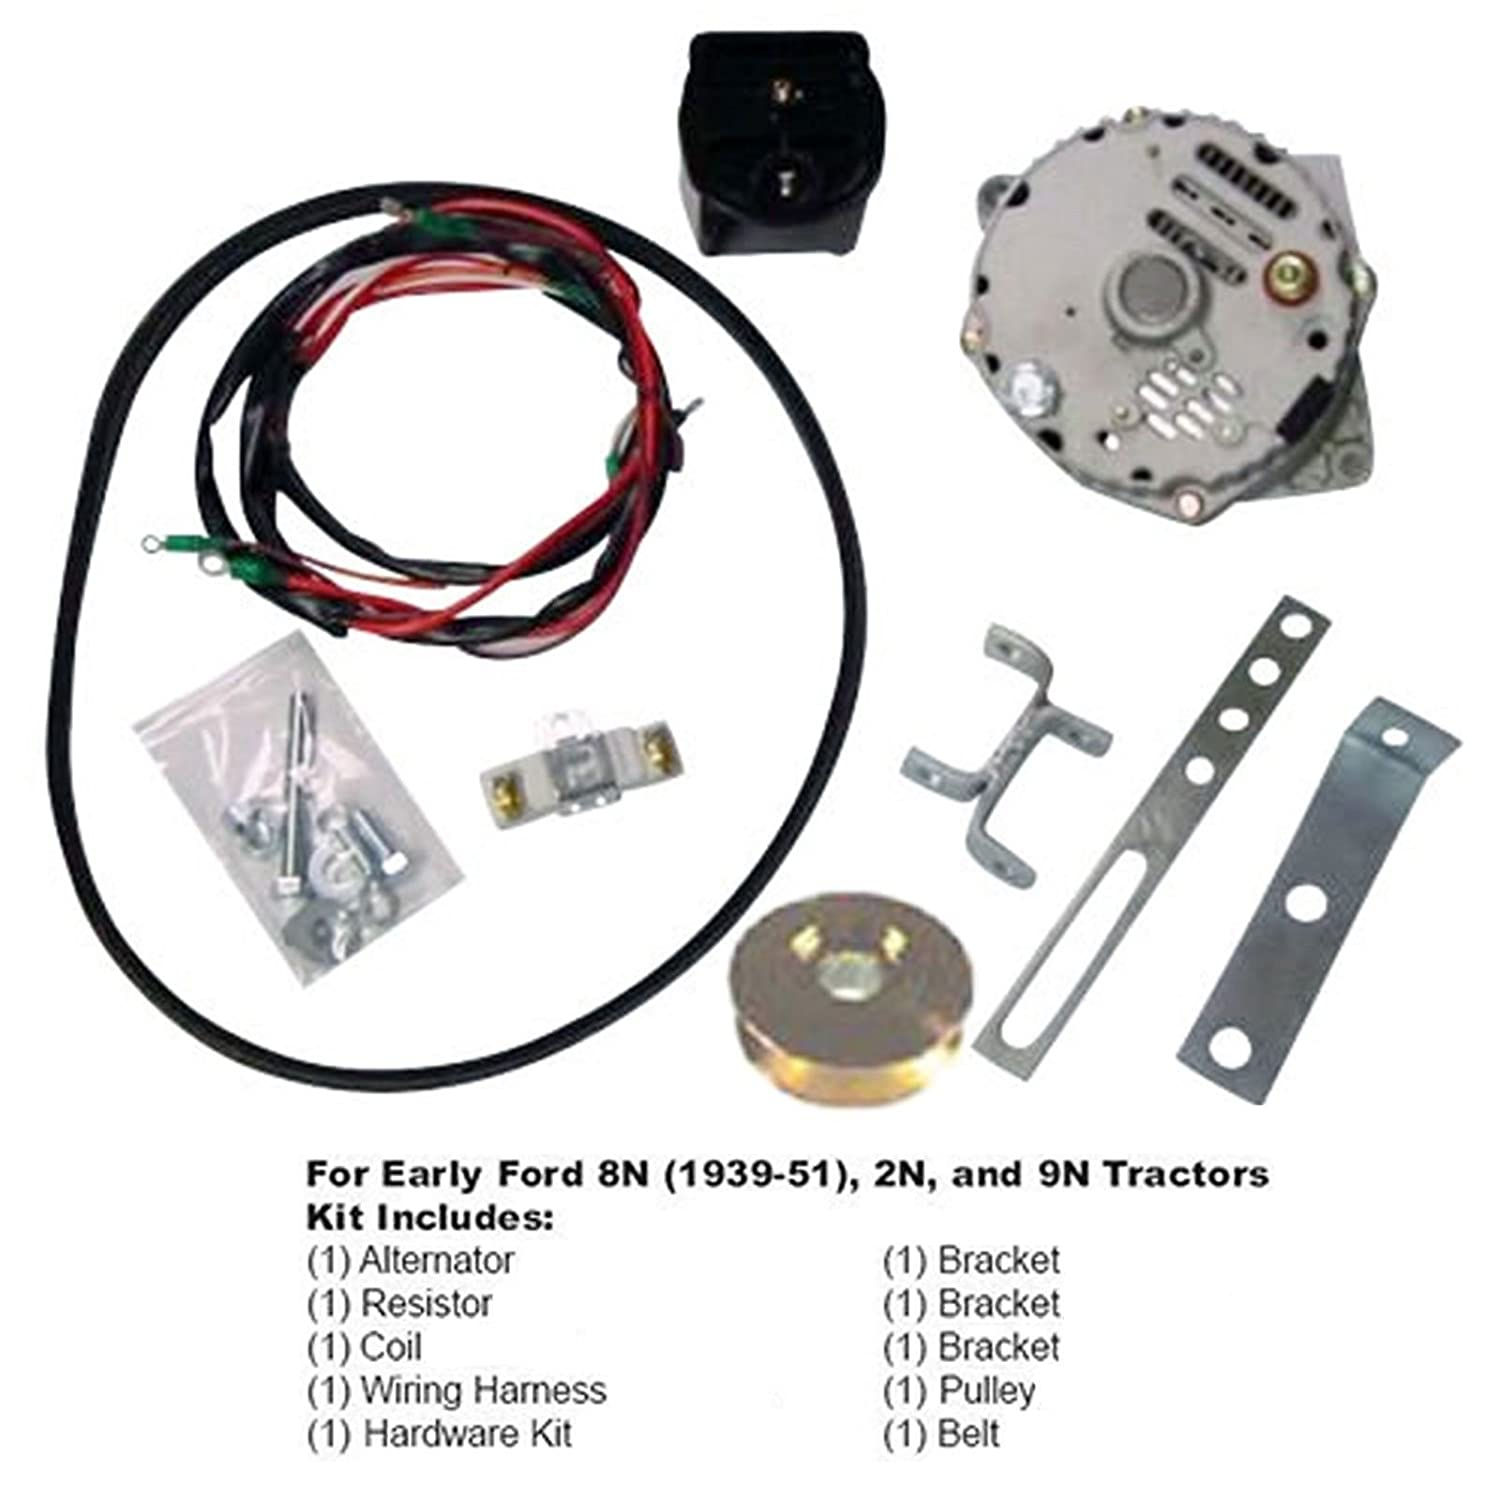 Ford 8n 2n 9n Tractor Generator To Alternator Conversion Wiring Harness Kit 1939 1951 12 Volt Automotive